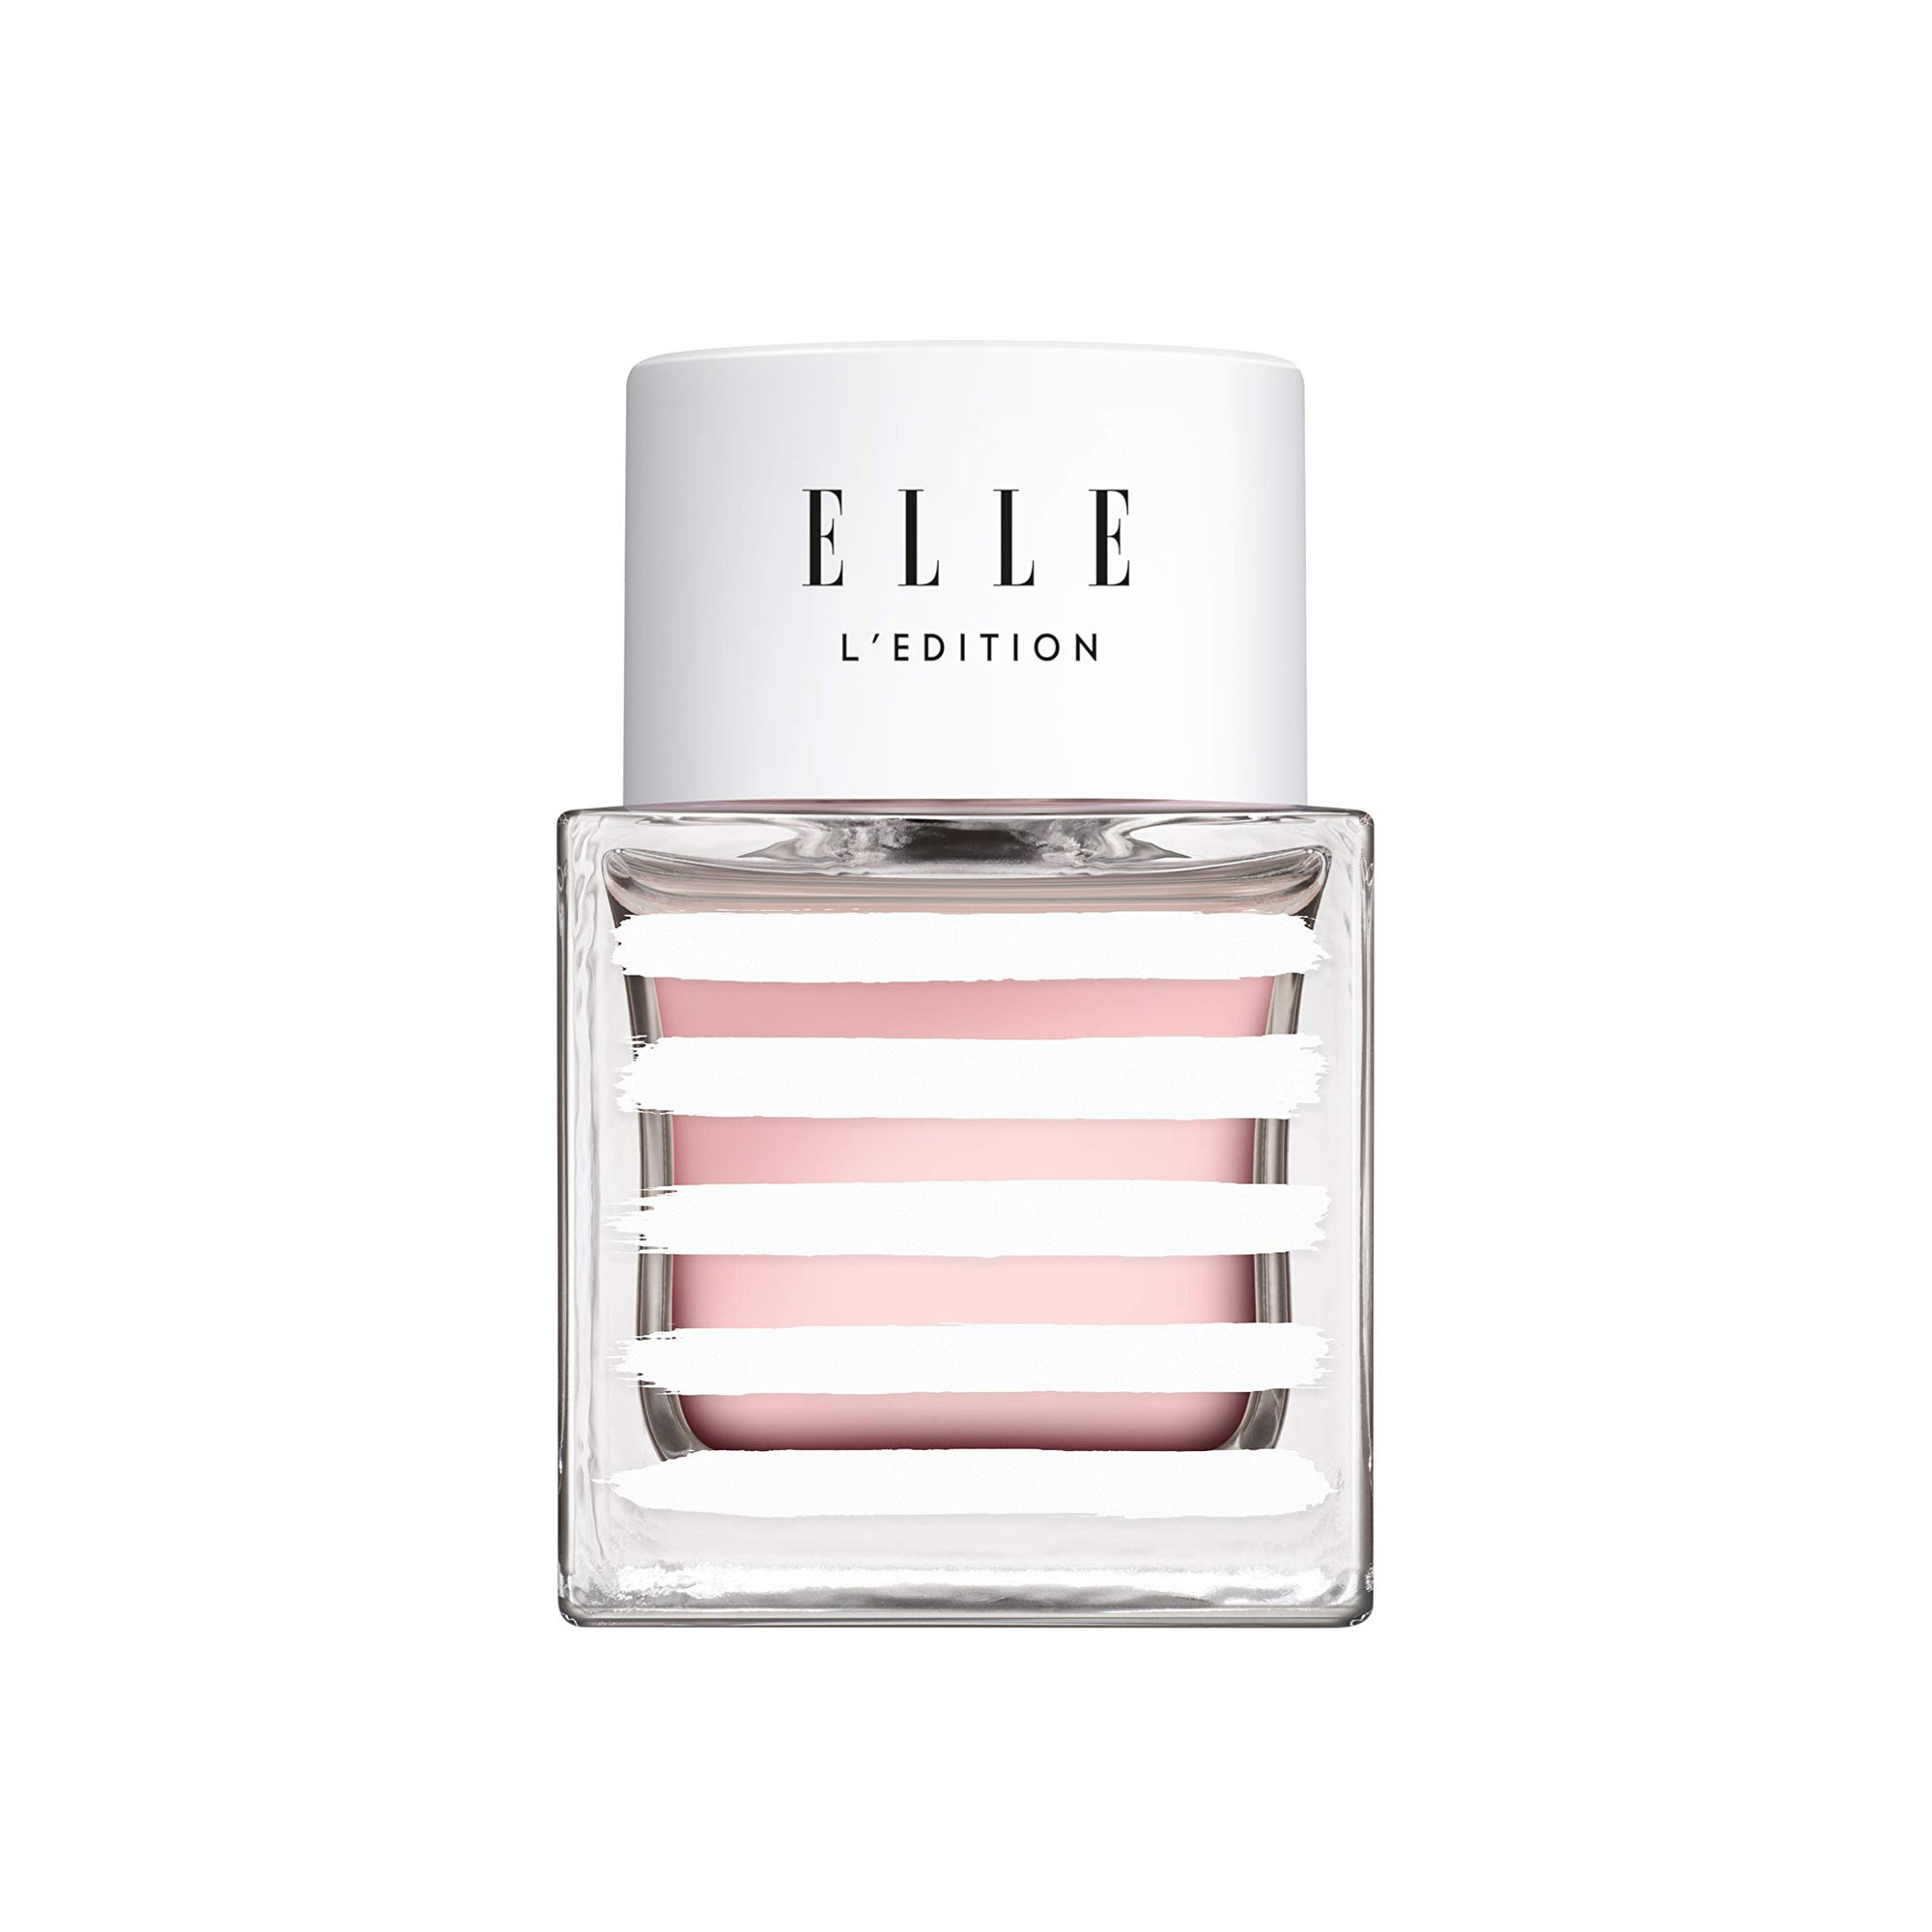 Elle Parfums L'Edition